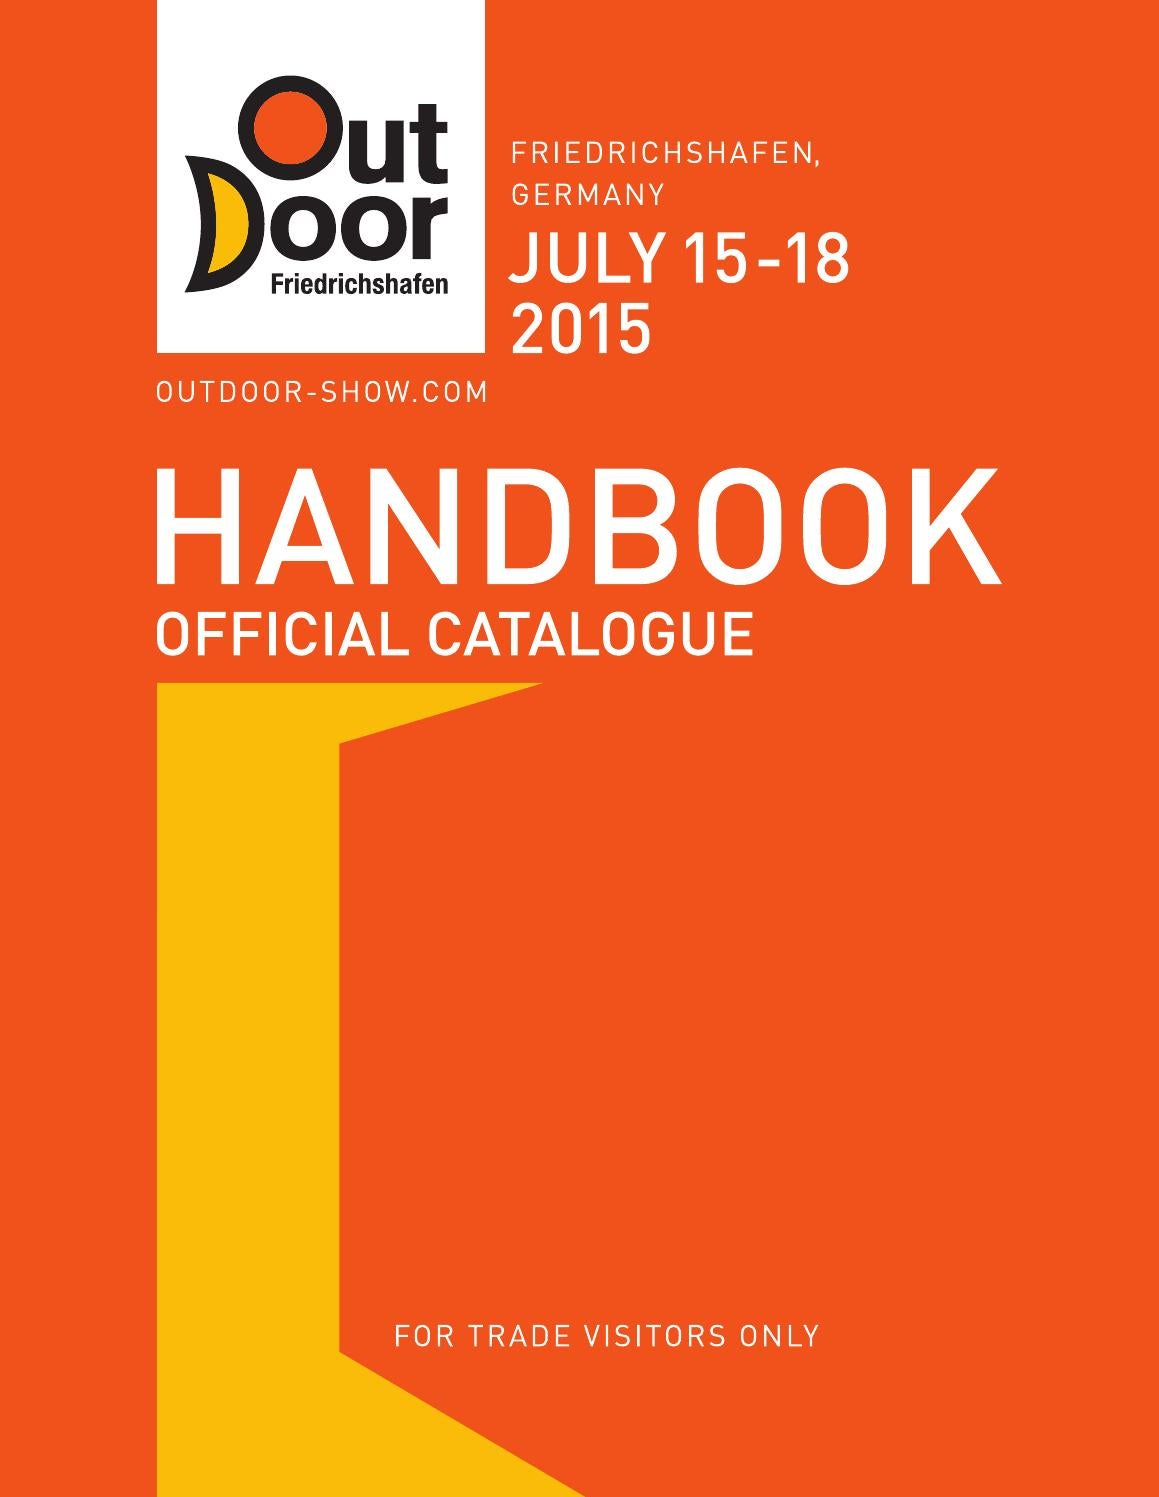 Sessel Cassin Outdoor 2015 Handbook By Messe Friedrichshafen Gmbh Issuu